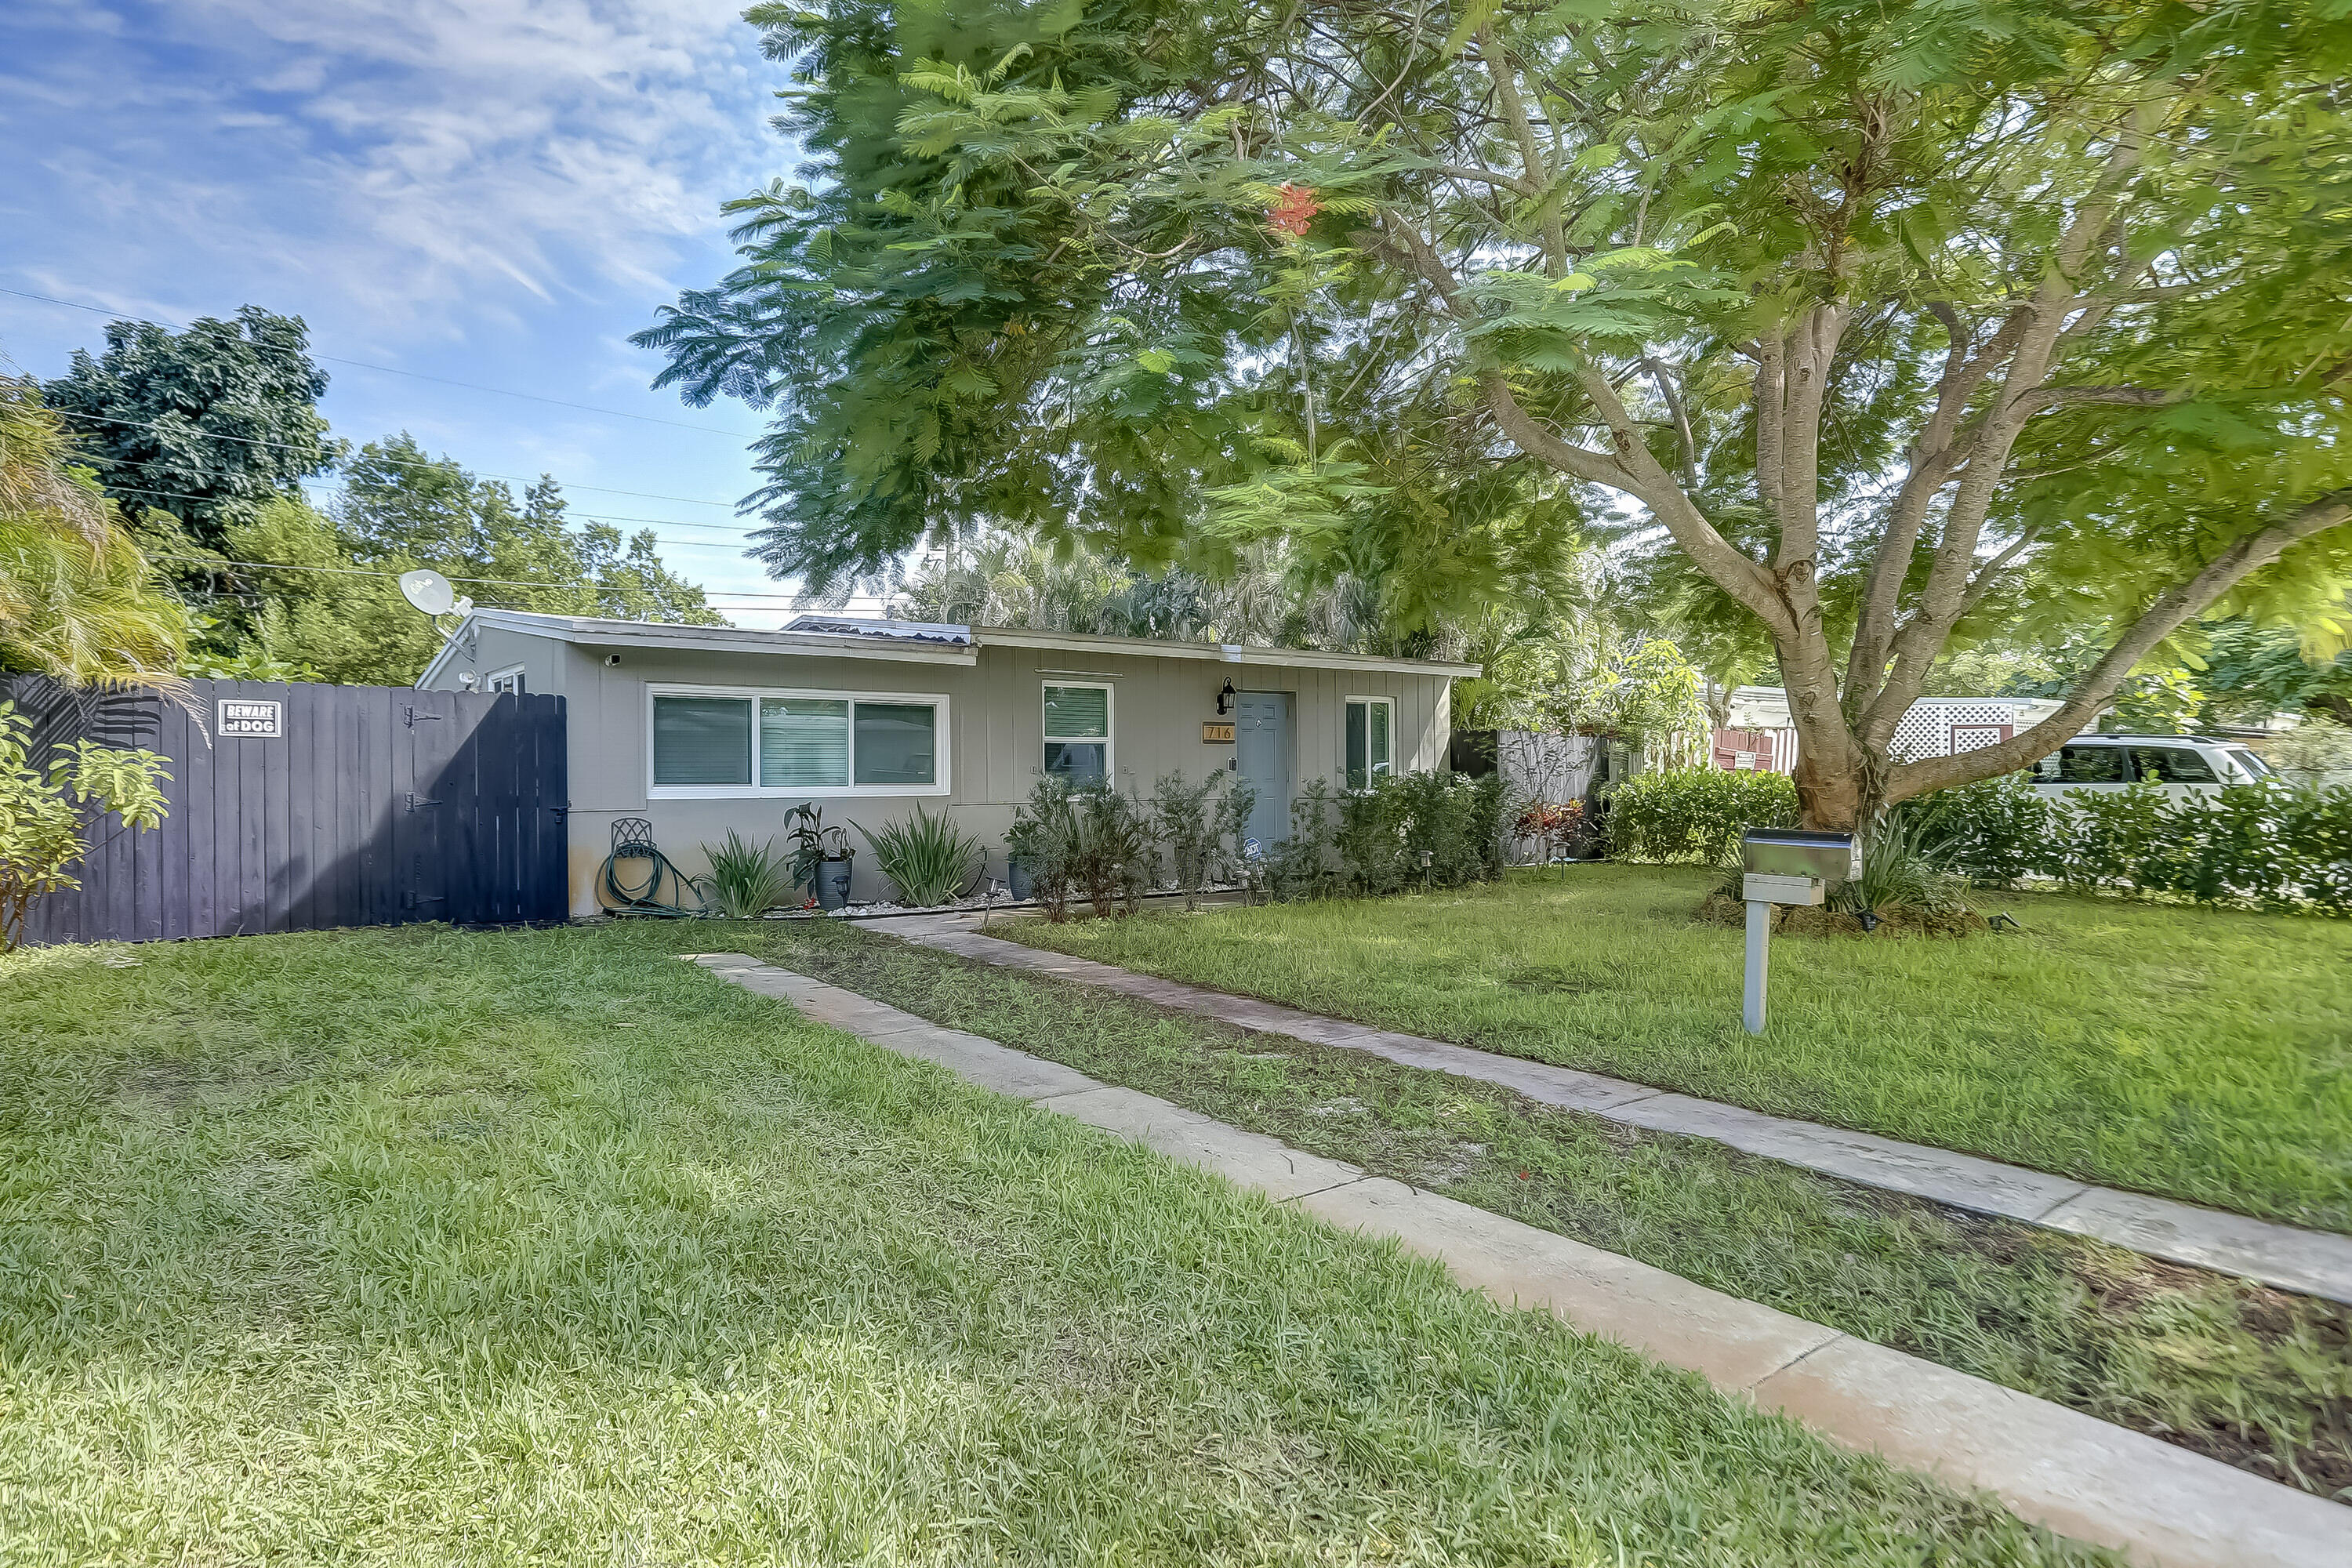 THIS is your new home! Remodeled, updated and ready for you! NO HOA! Dive in to the pool and enjoy the lush and serene backyard! **Showings start @ Open House - 10/24/21 from 11am-2:30pm ** Once inside you'll be greeted with tile flooring throughout, Hurricane/Impact Windows and Doors and a new AC system! Live less than 3 miles from the beach! The roof is less than 10 years old!